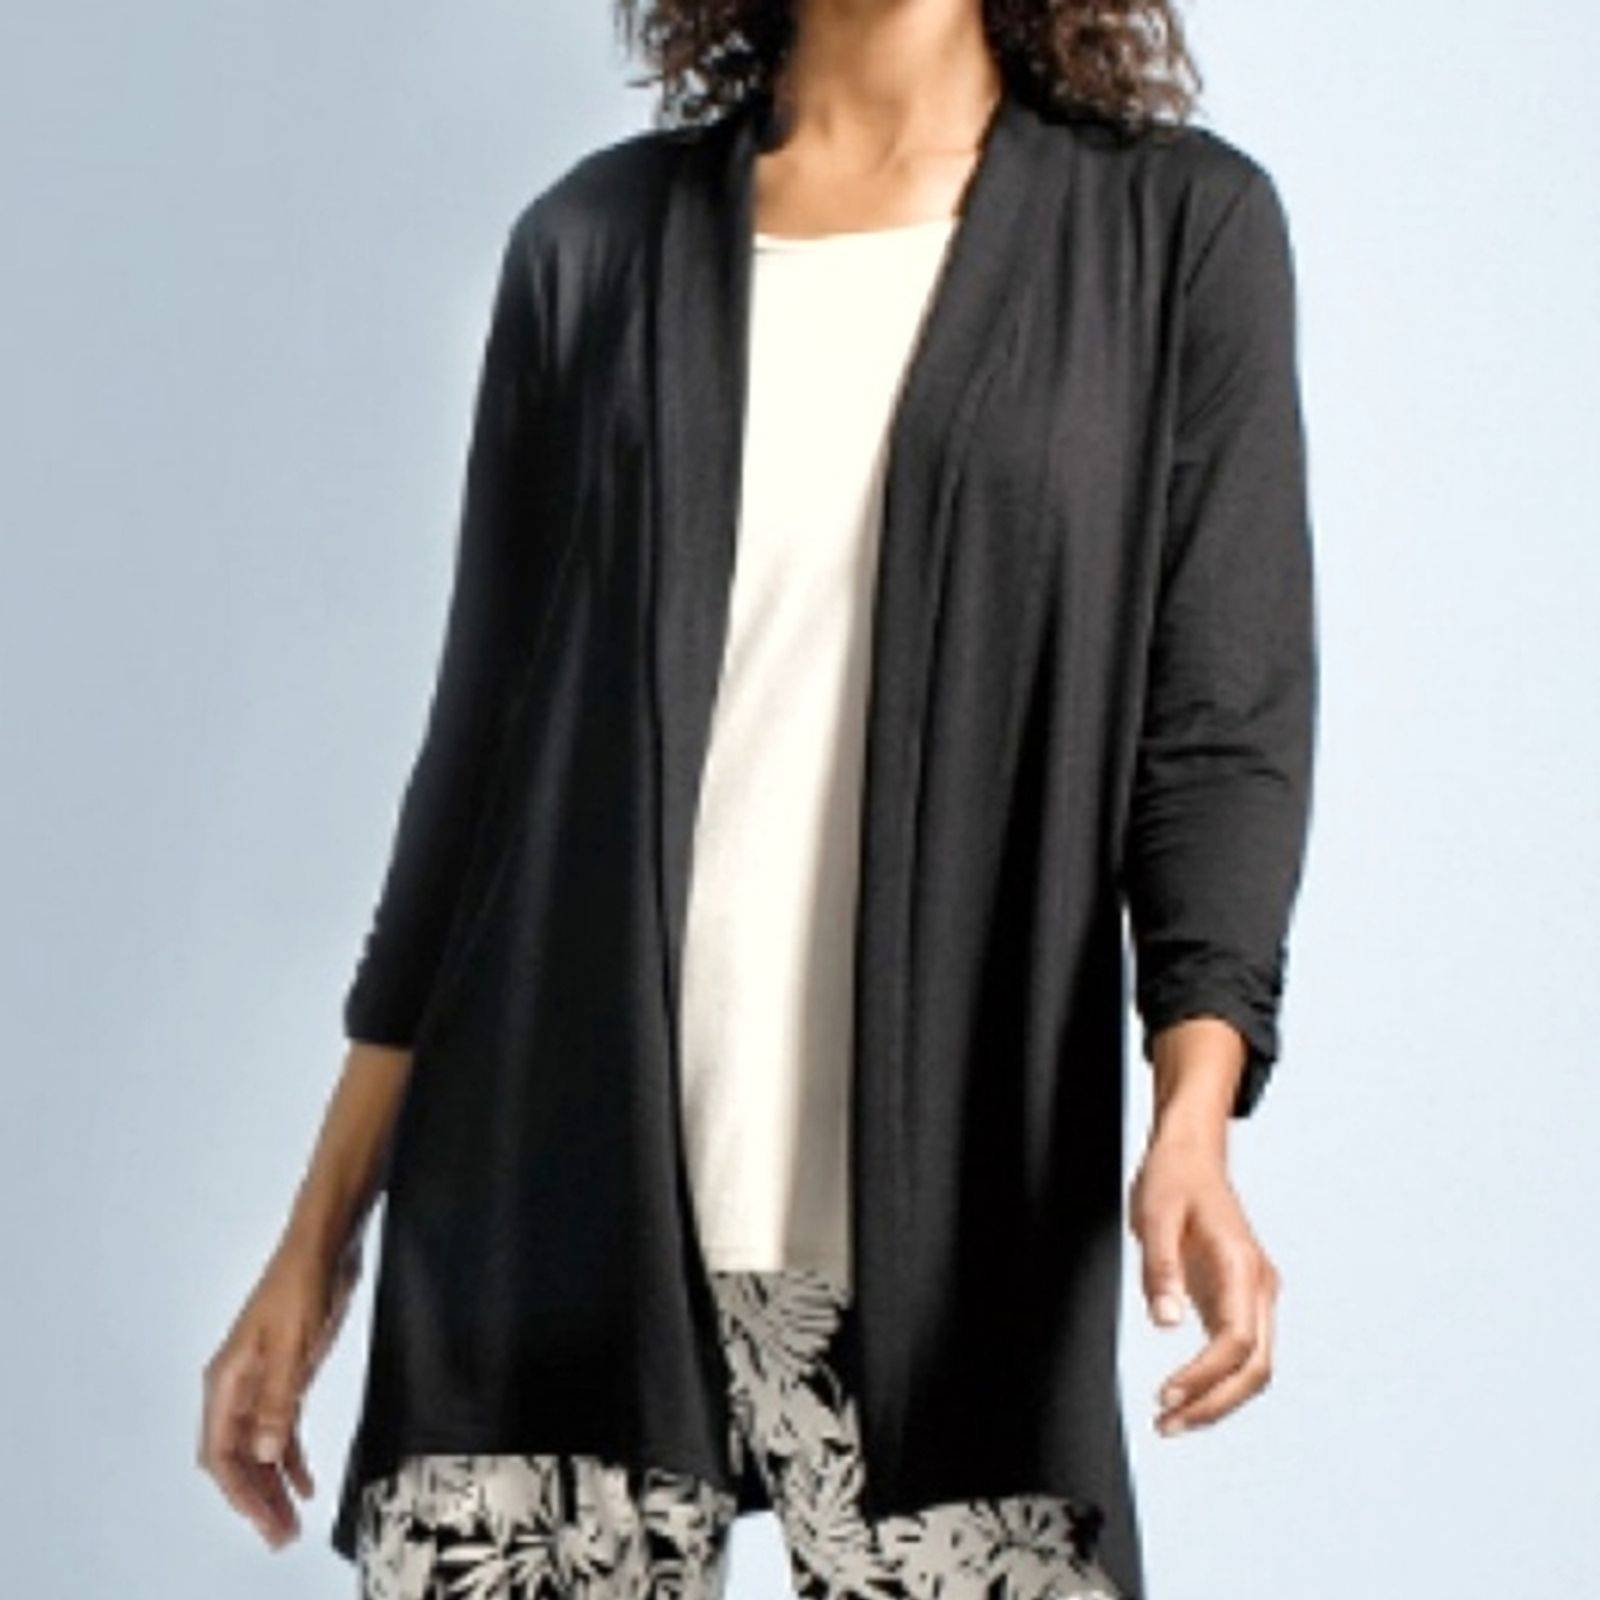 J. Jill Wearever Collection Cardigan MP